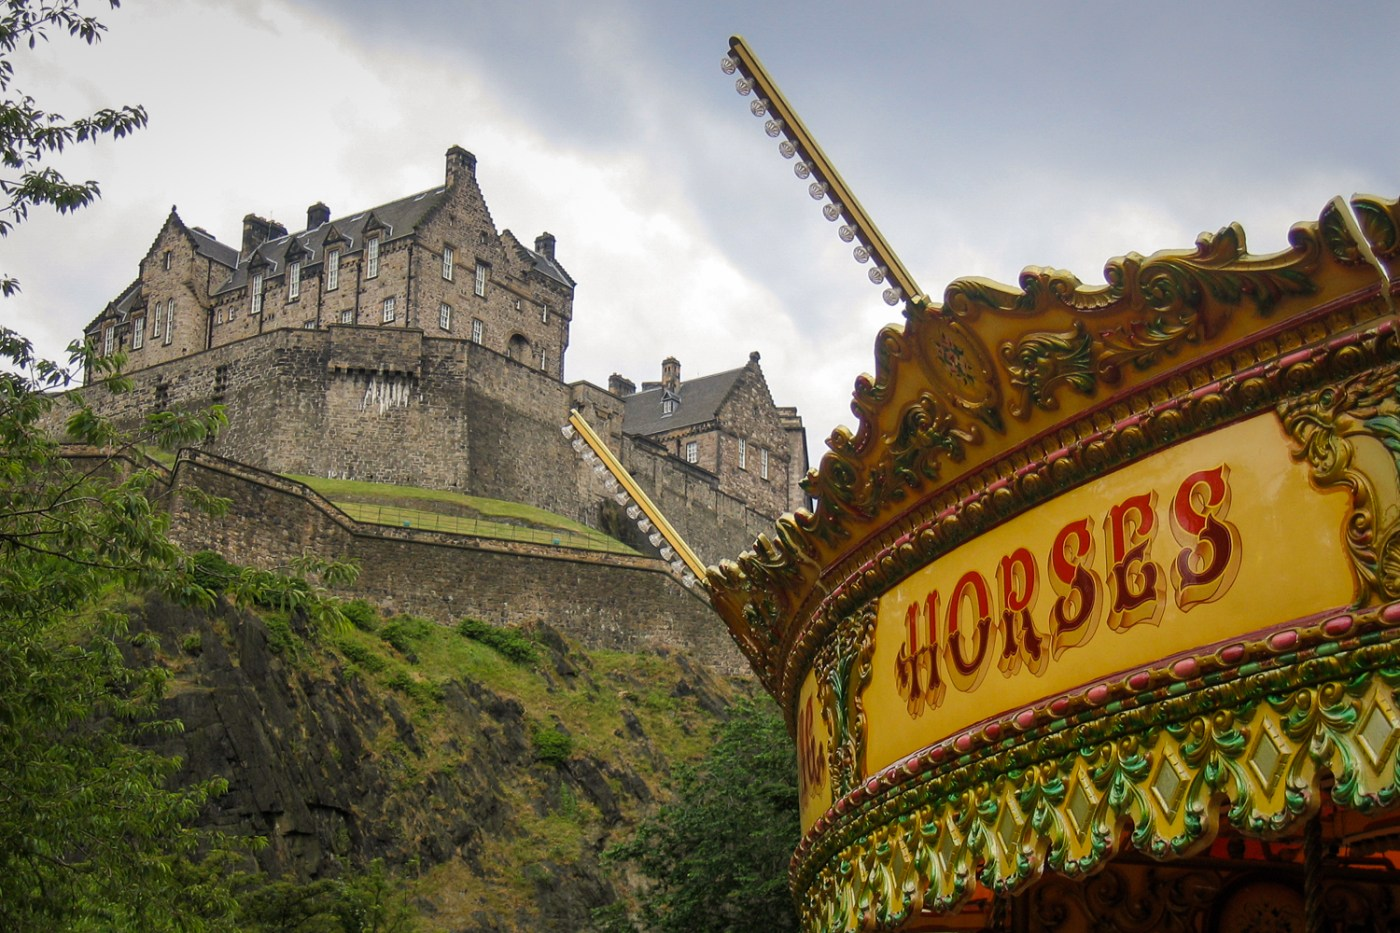 Edinburgh Castle with Merry-go-round